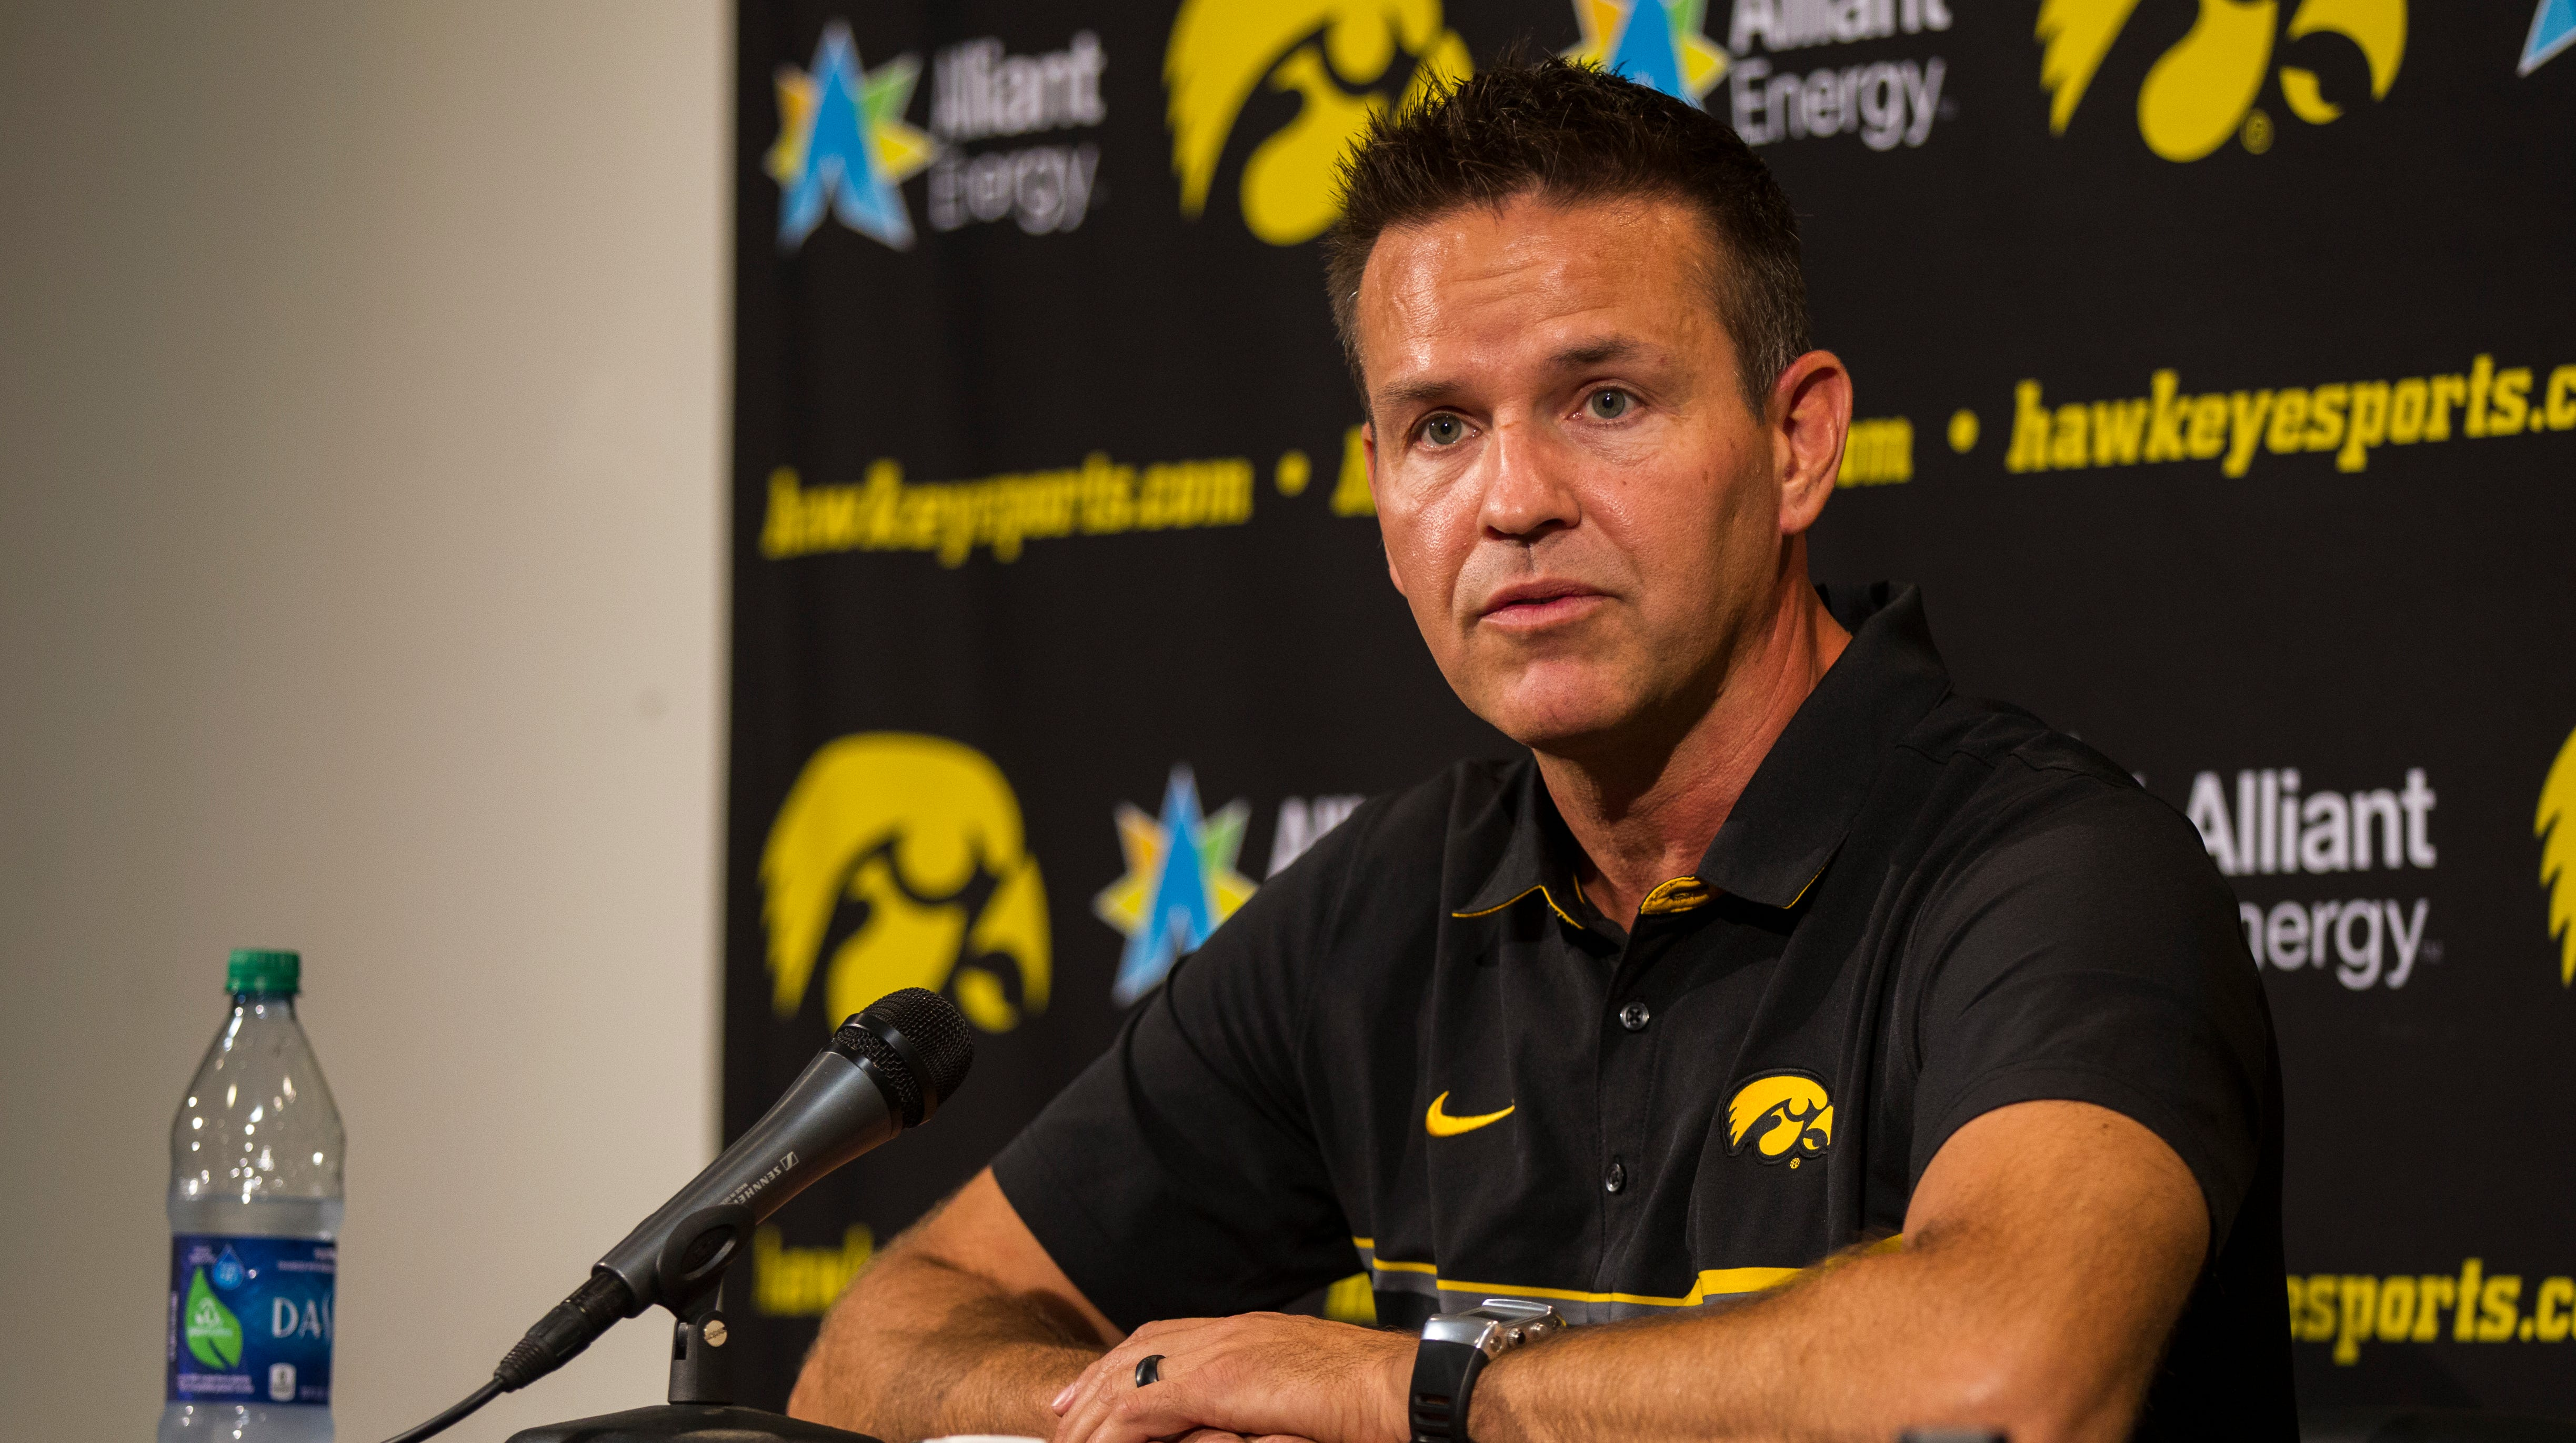 Iowa Hawkeyes volleyball coach Bond Shymansky on administrative leave due to an NCAA rules violation